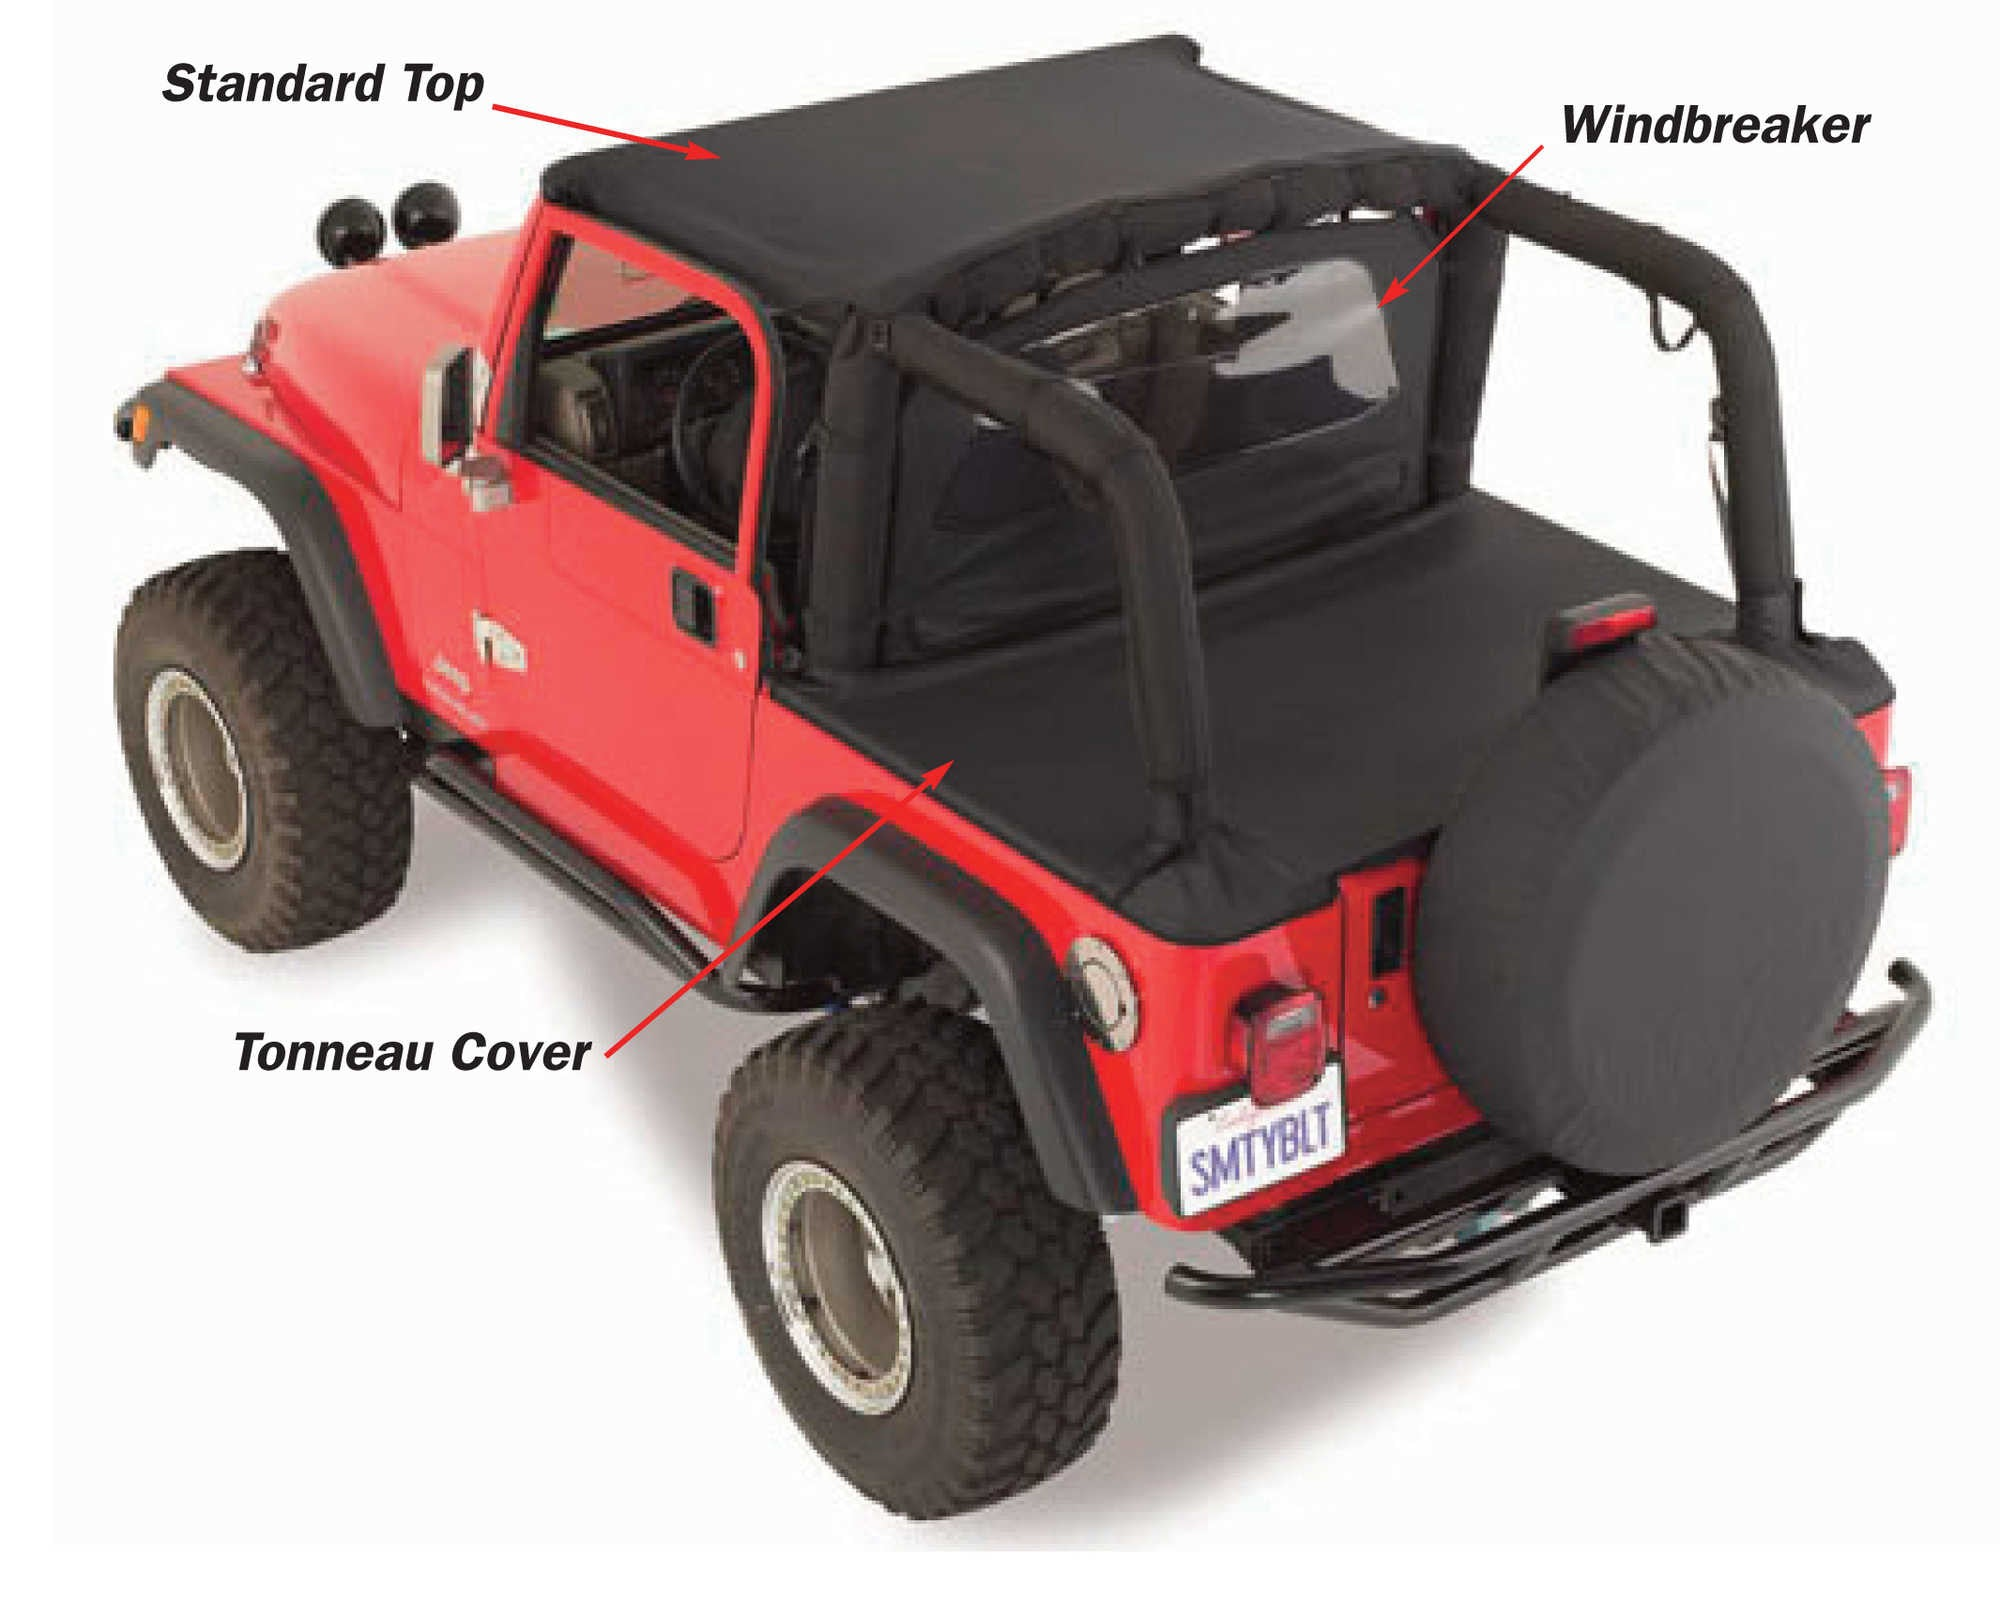 Smittybilt Tonneau Cover for 97 06 Jeep Wrangler TJ with Factory